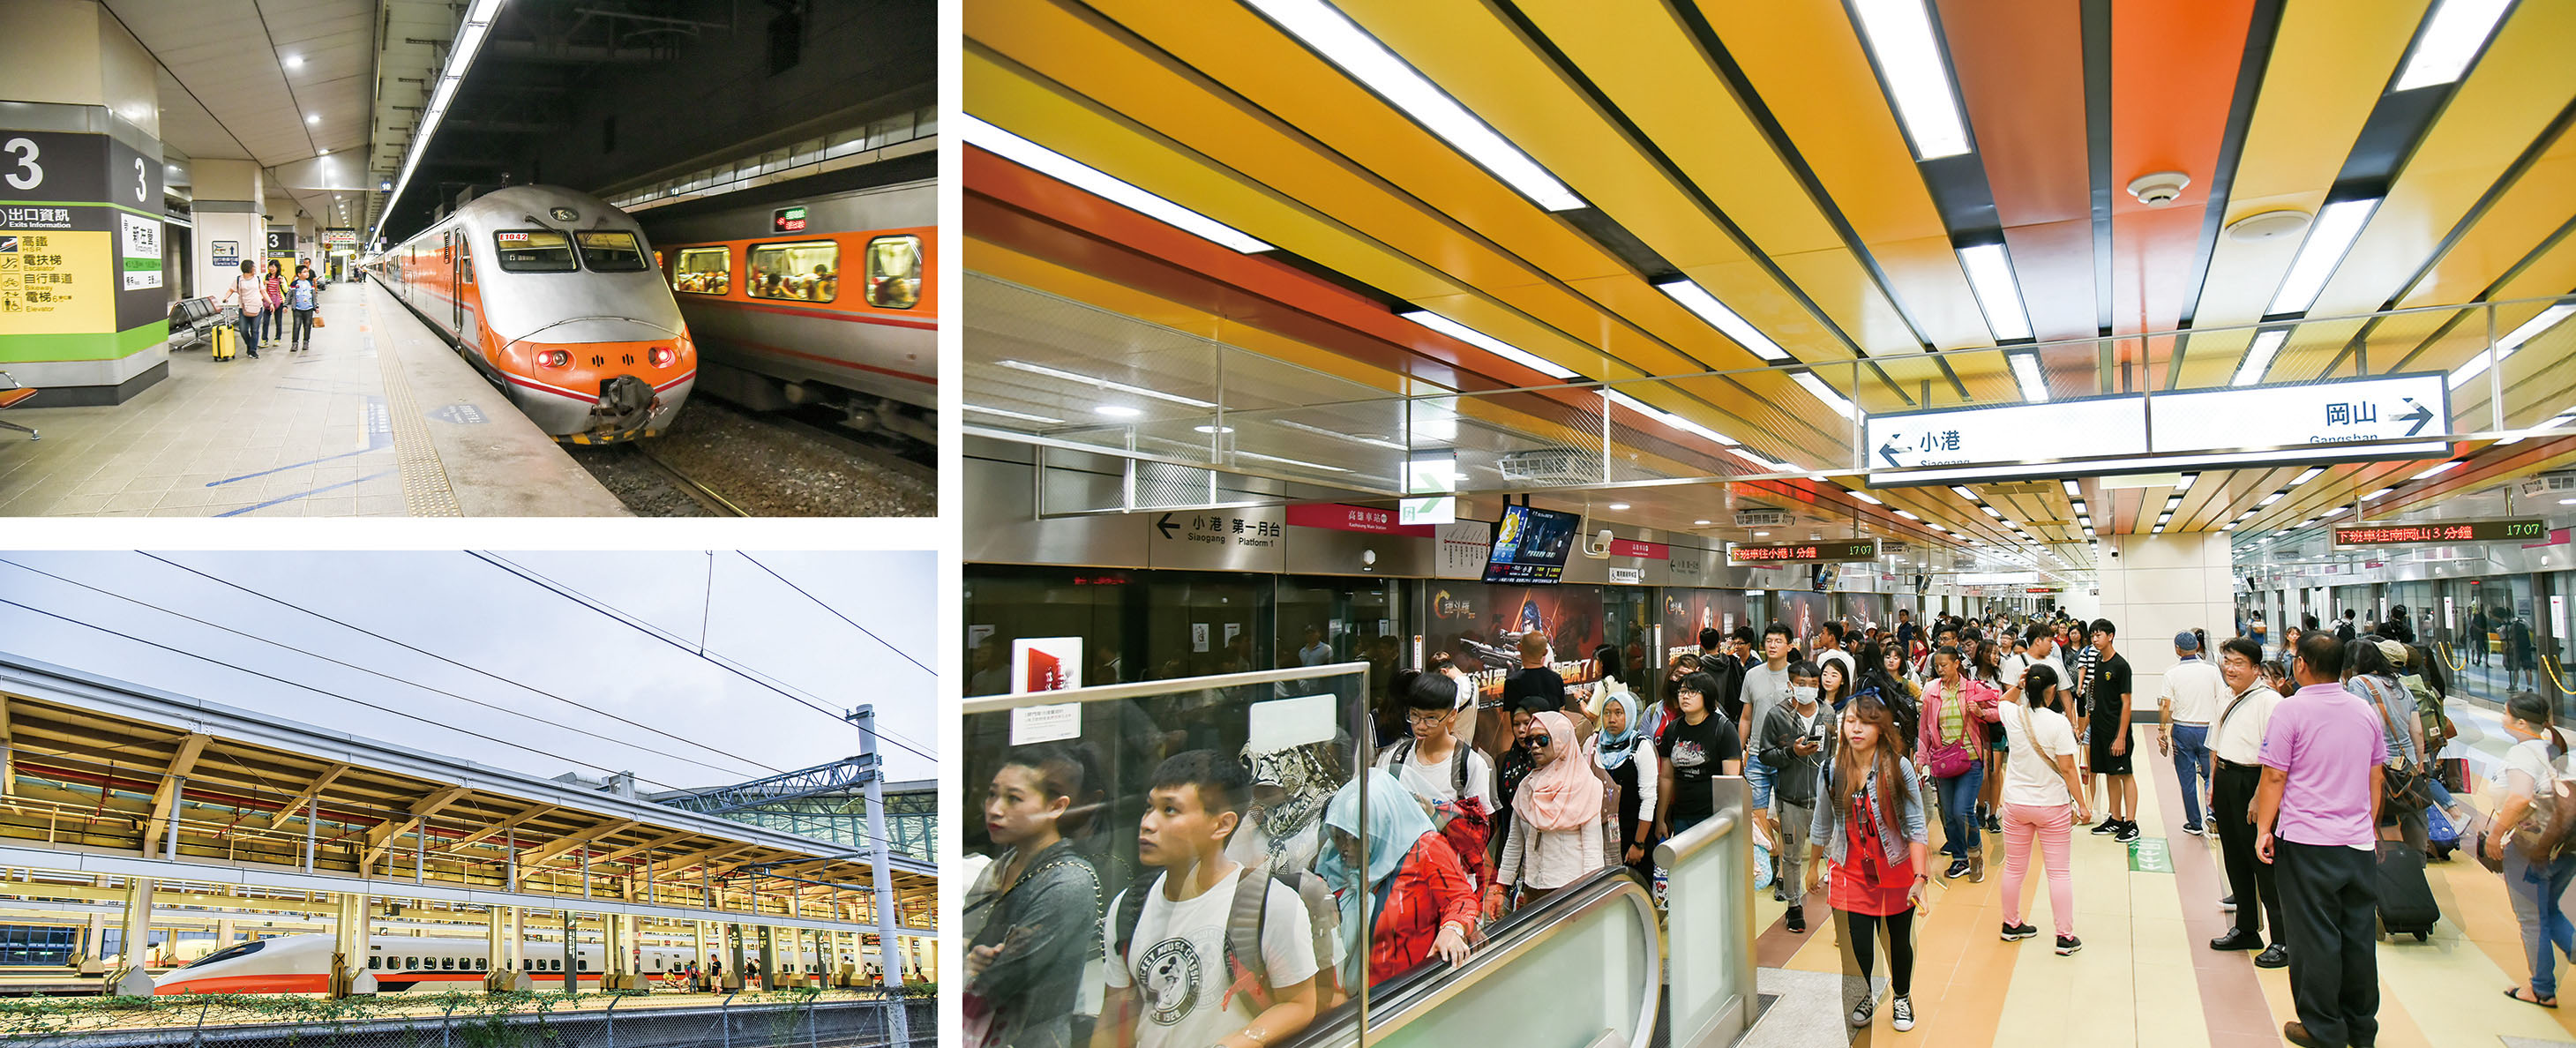 Kaohsiung Underground Railway Line Makes Its Debut